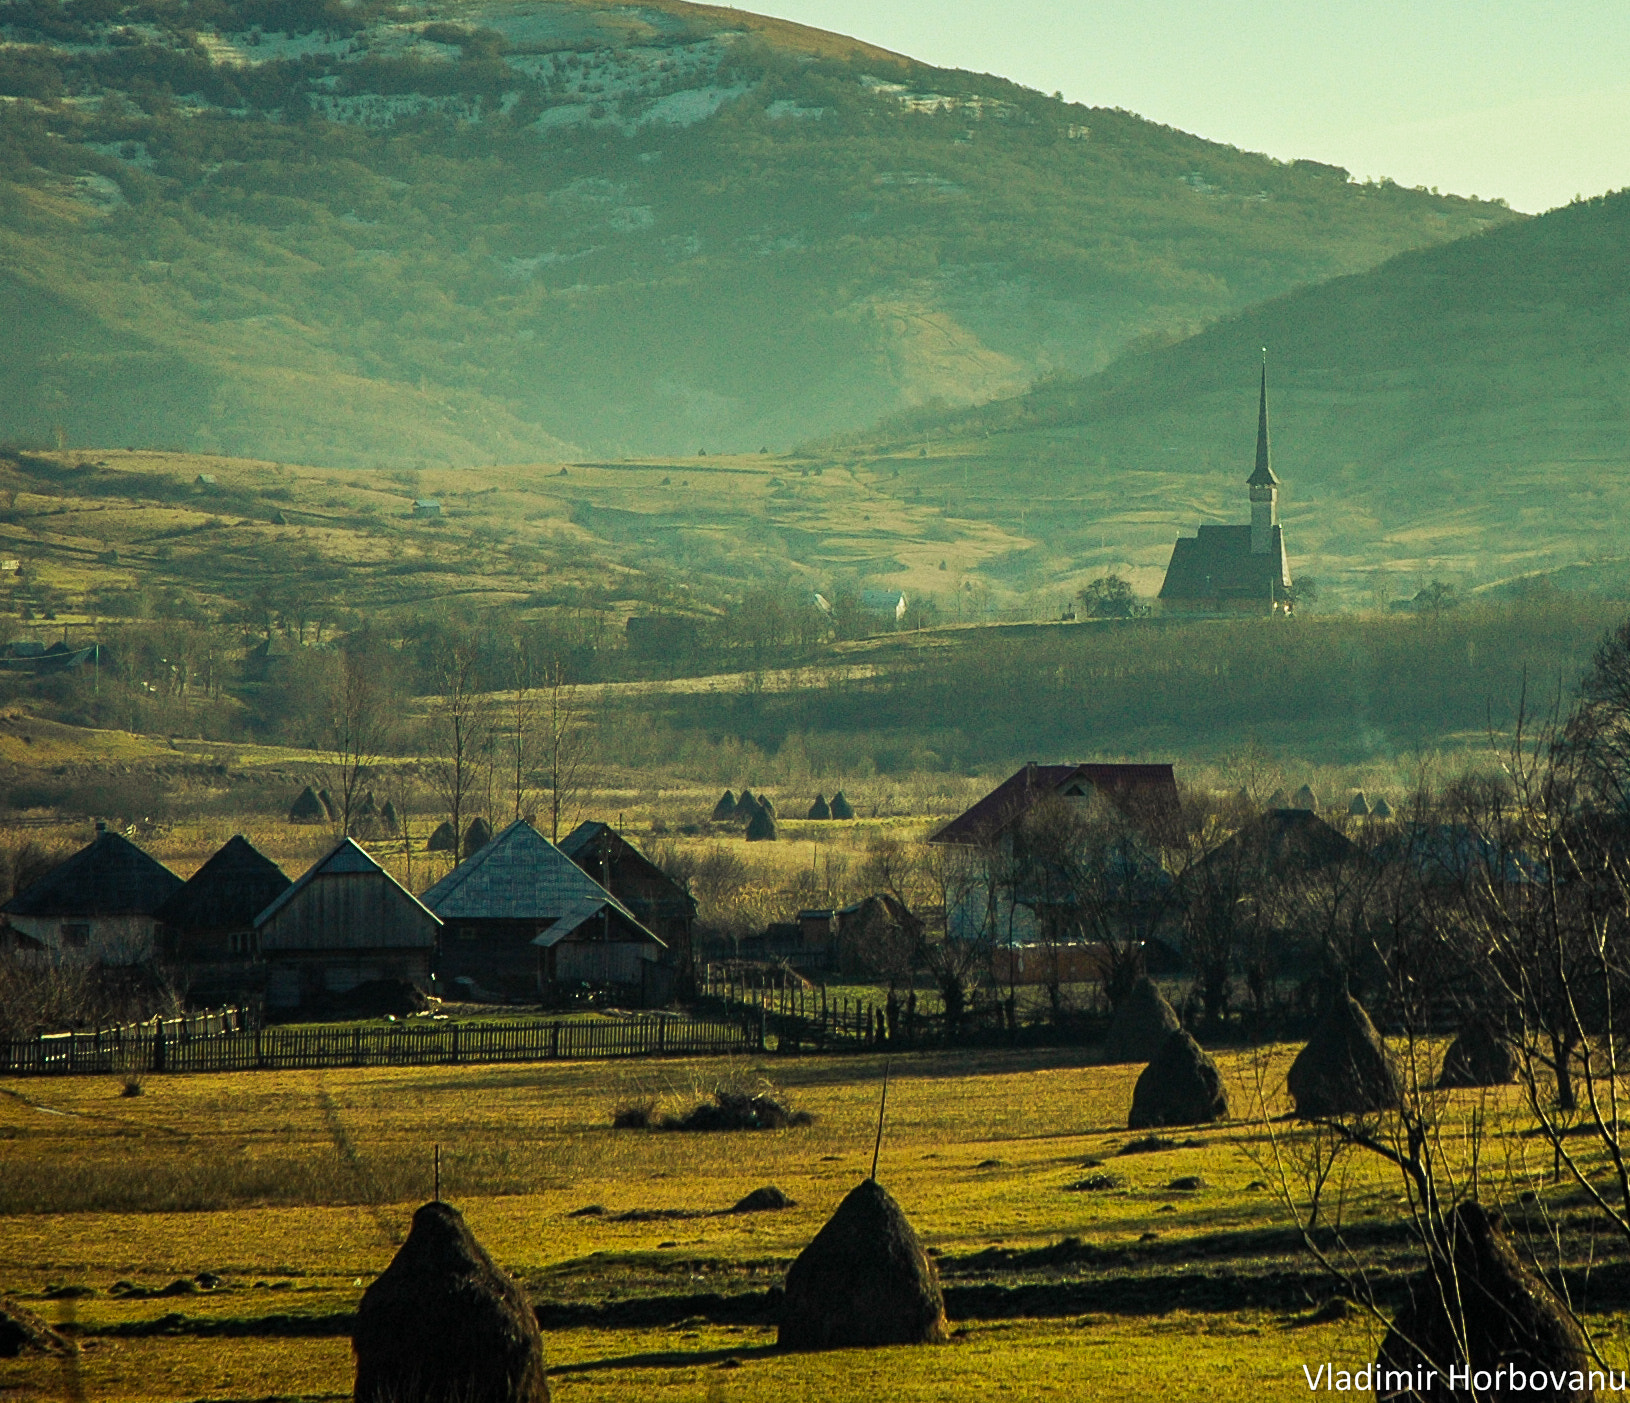 Photograph Wooden church watching over the village by Vladimir Horbovanu on 500px